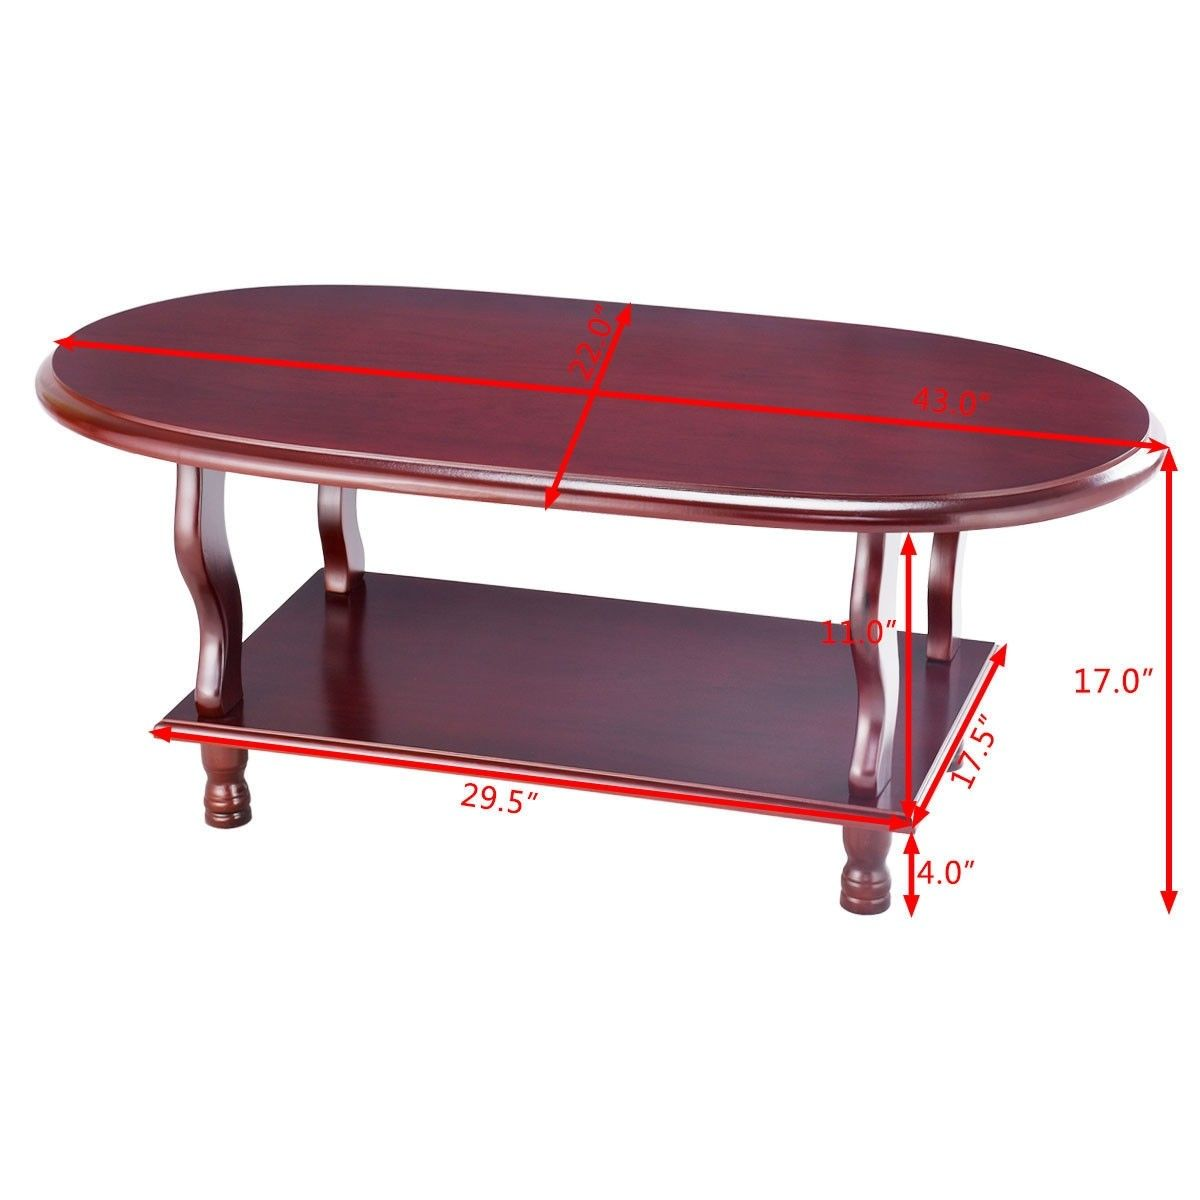 Classic Oval Cherry Coffee Table With 2 Tier Design Coffee Table Side Coffee Table Cherry Coffee Table [ 1200 x 1200 Pixel ]